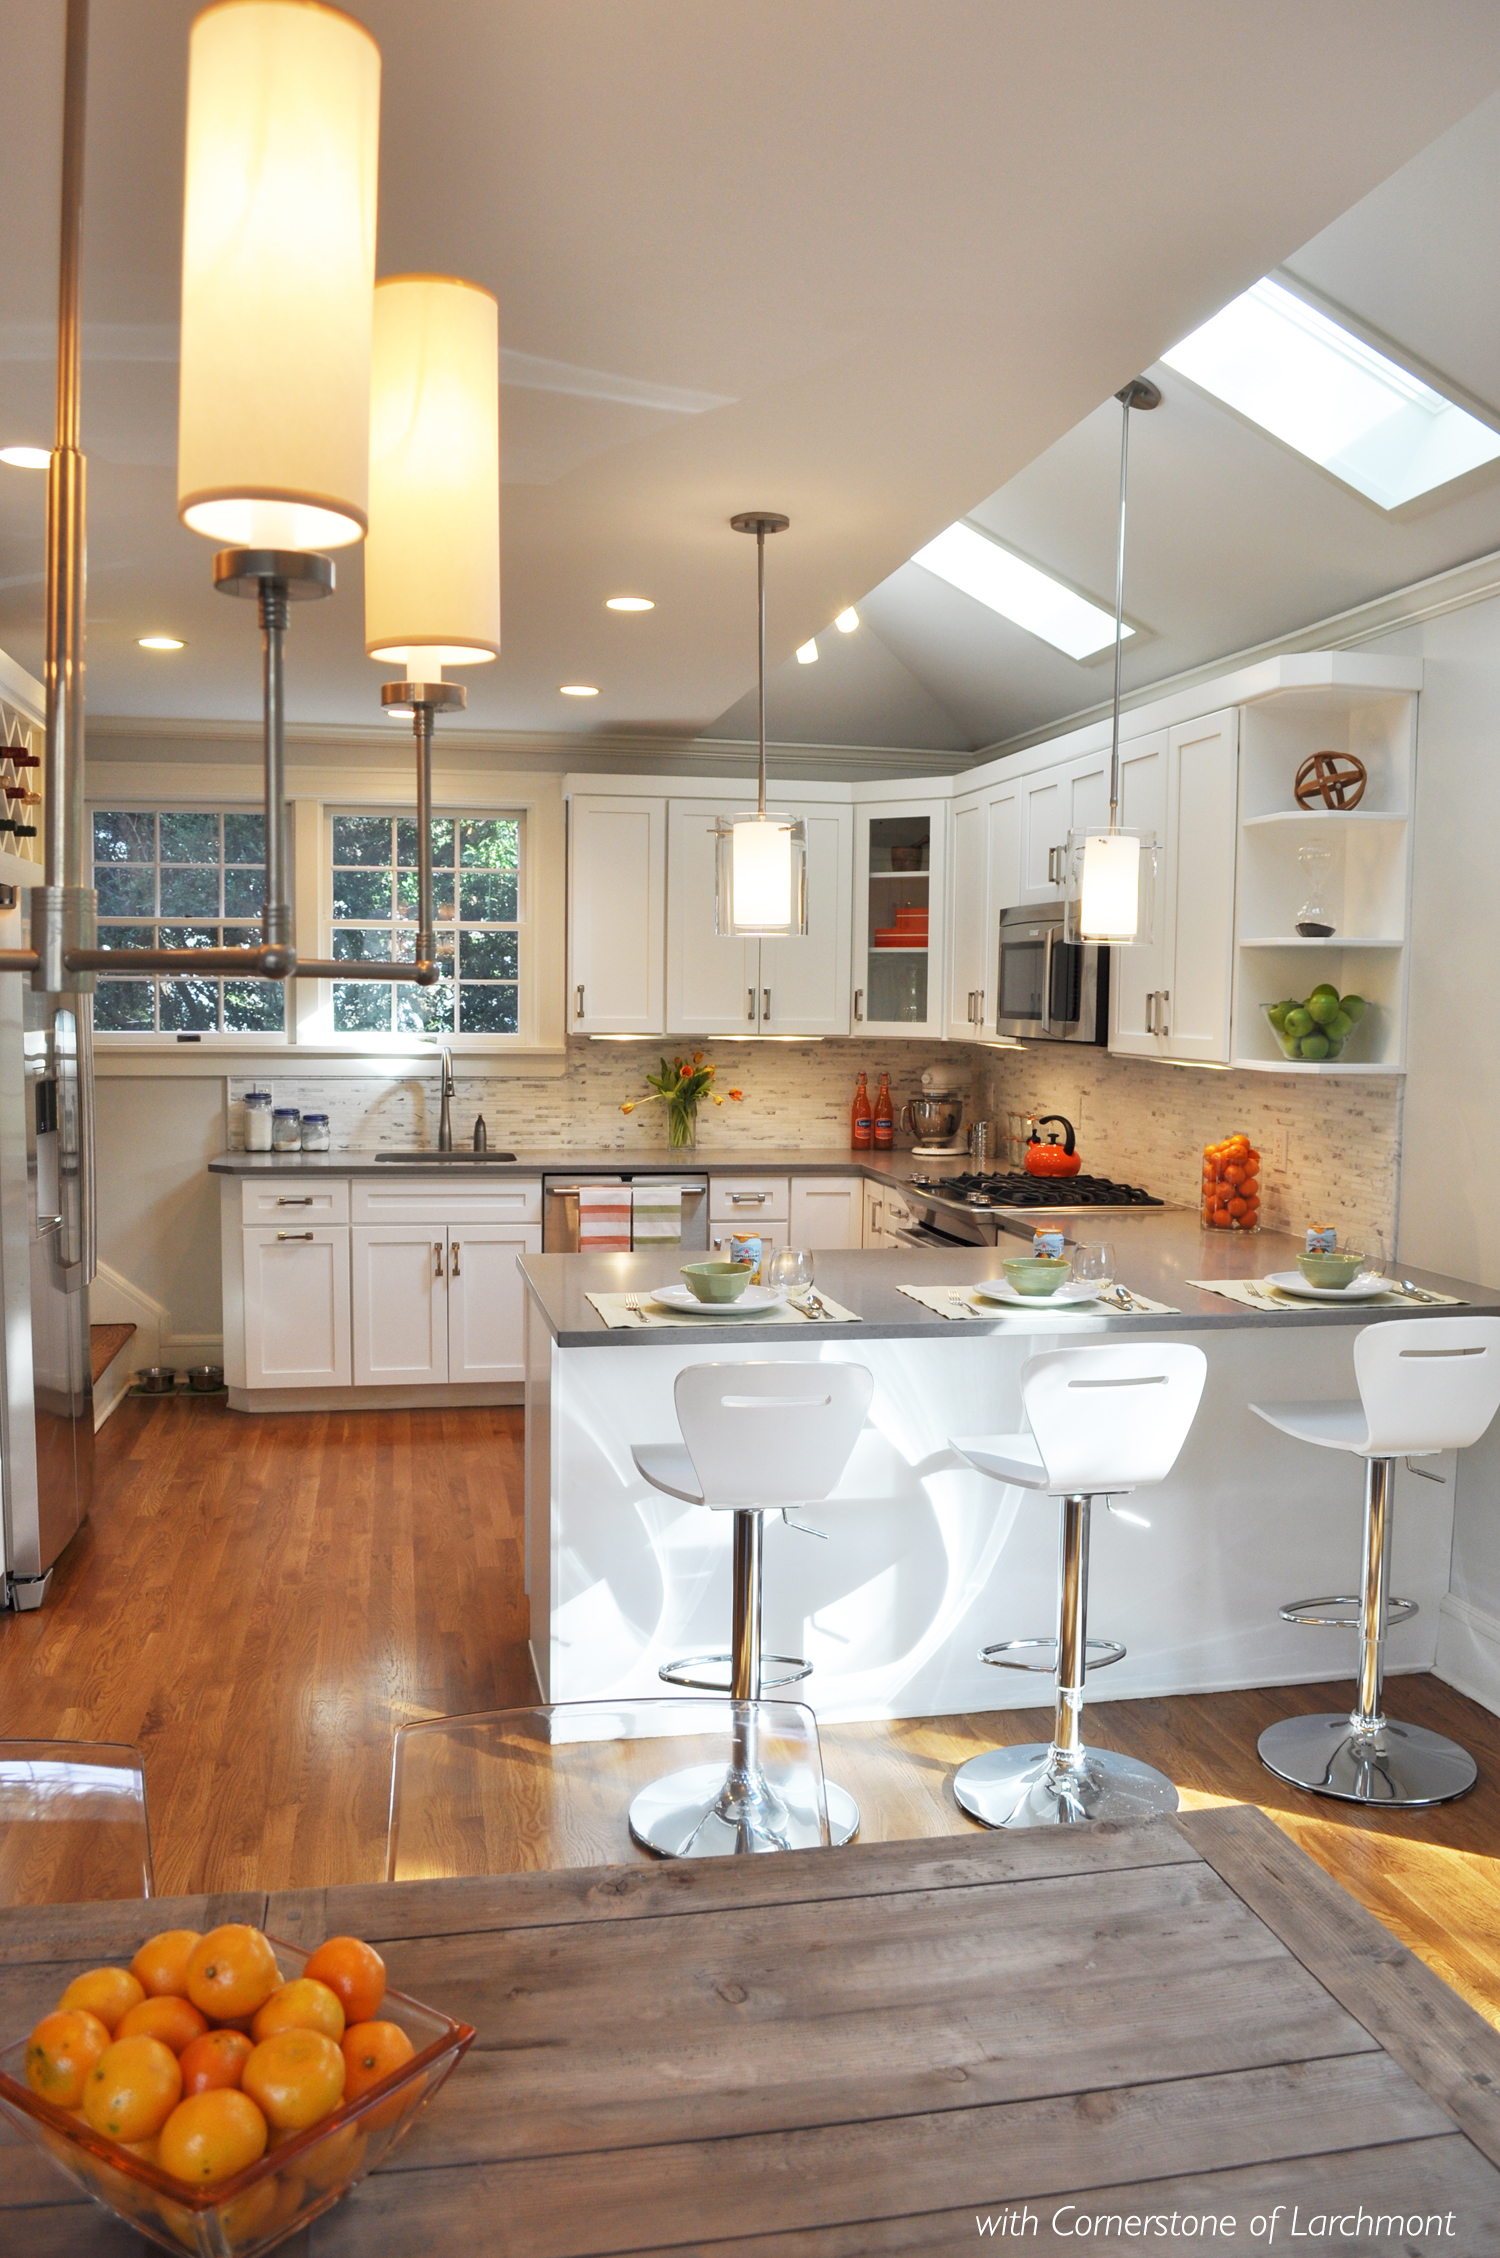 KAM DESIGN LLC_Kitchen Remodel_White Kitchen Cabinets_Caesarstone counters_Carrara Backsplash_Modern Lighting.jpg